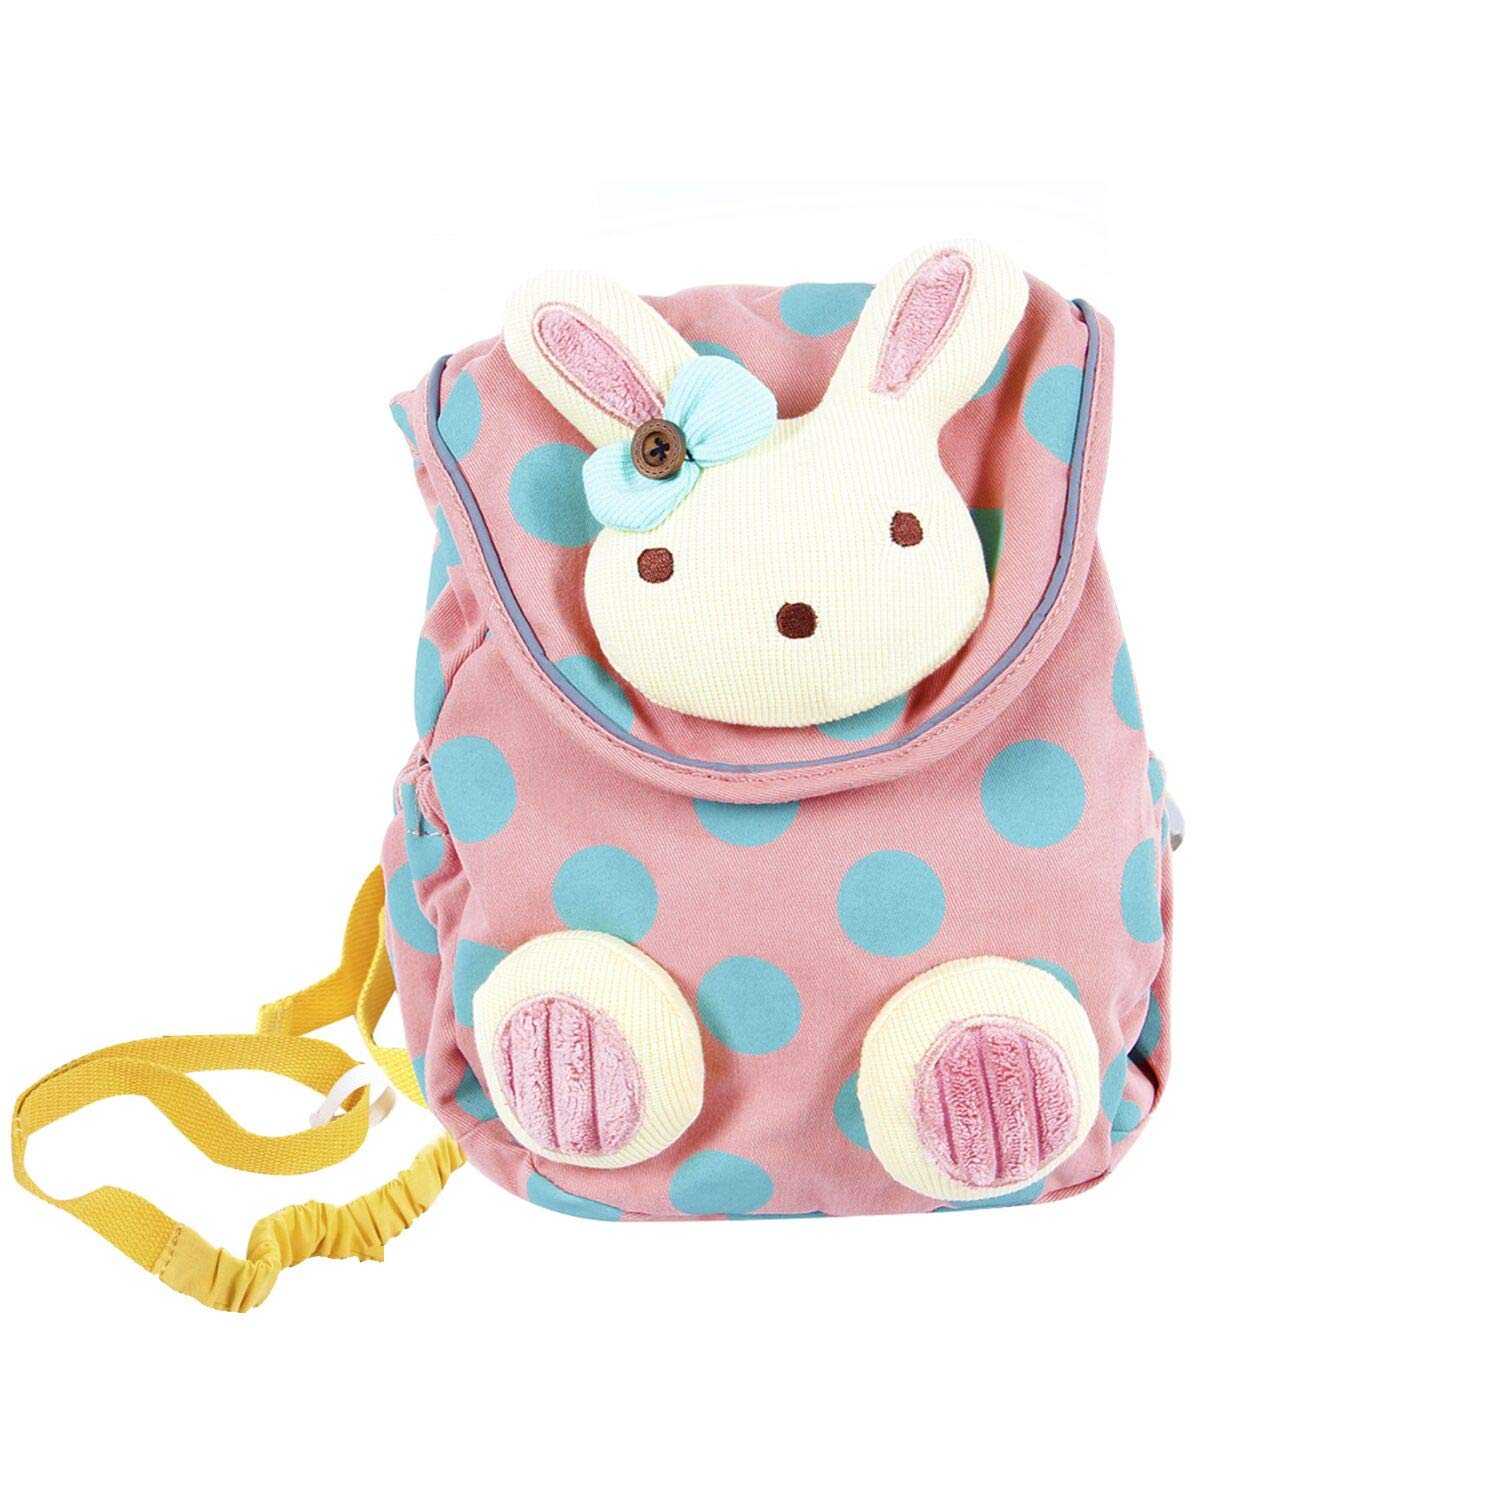 Labebe Toddler Backpack with Harness, Pink Backpack with Bunny for Kid of 1-3 Years, Anti-Lost Backpack with Anti-Lost Leash/Toddler Girl Backpack/Snack Bag Kid/Harness Backpack/Baby Girl Bag